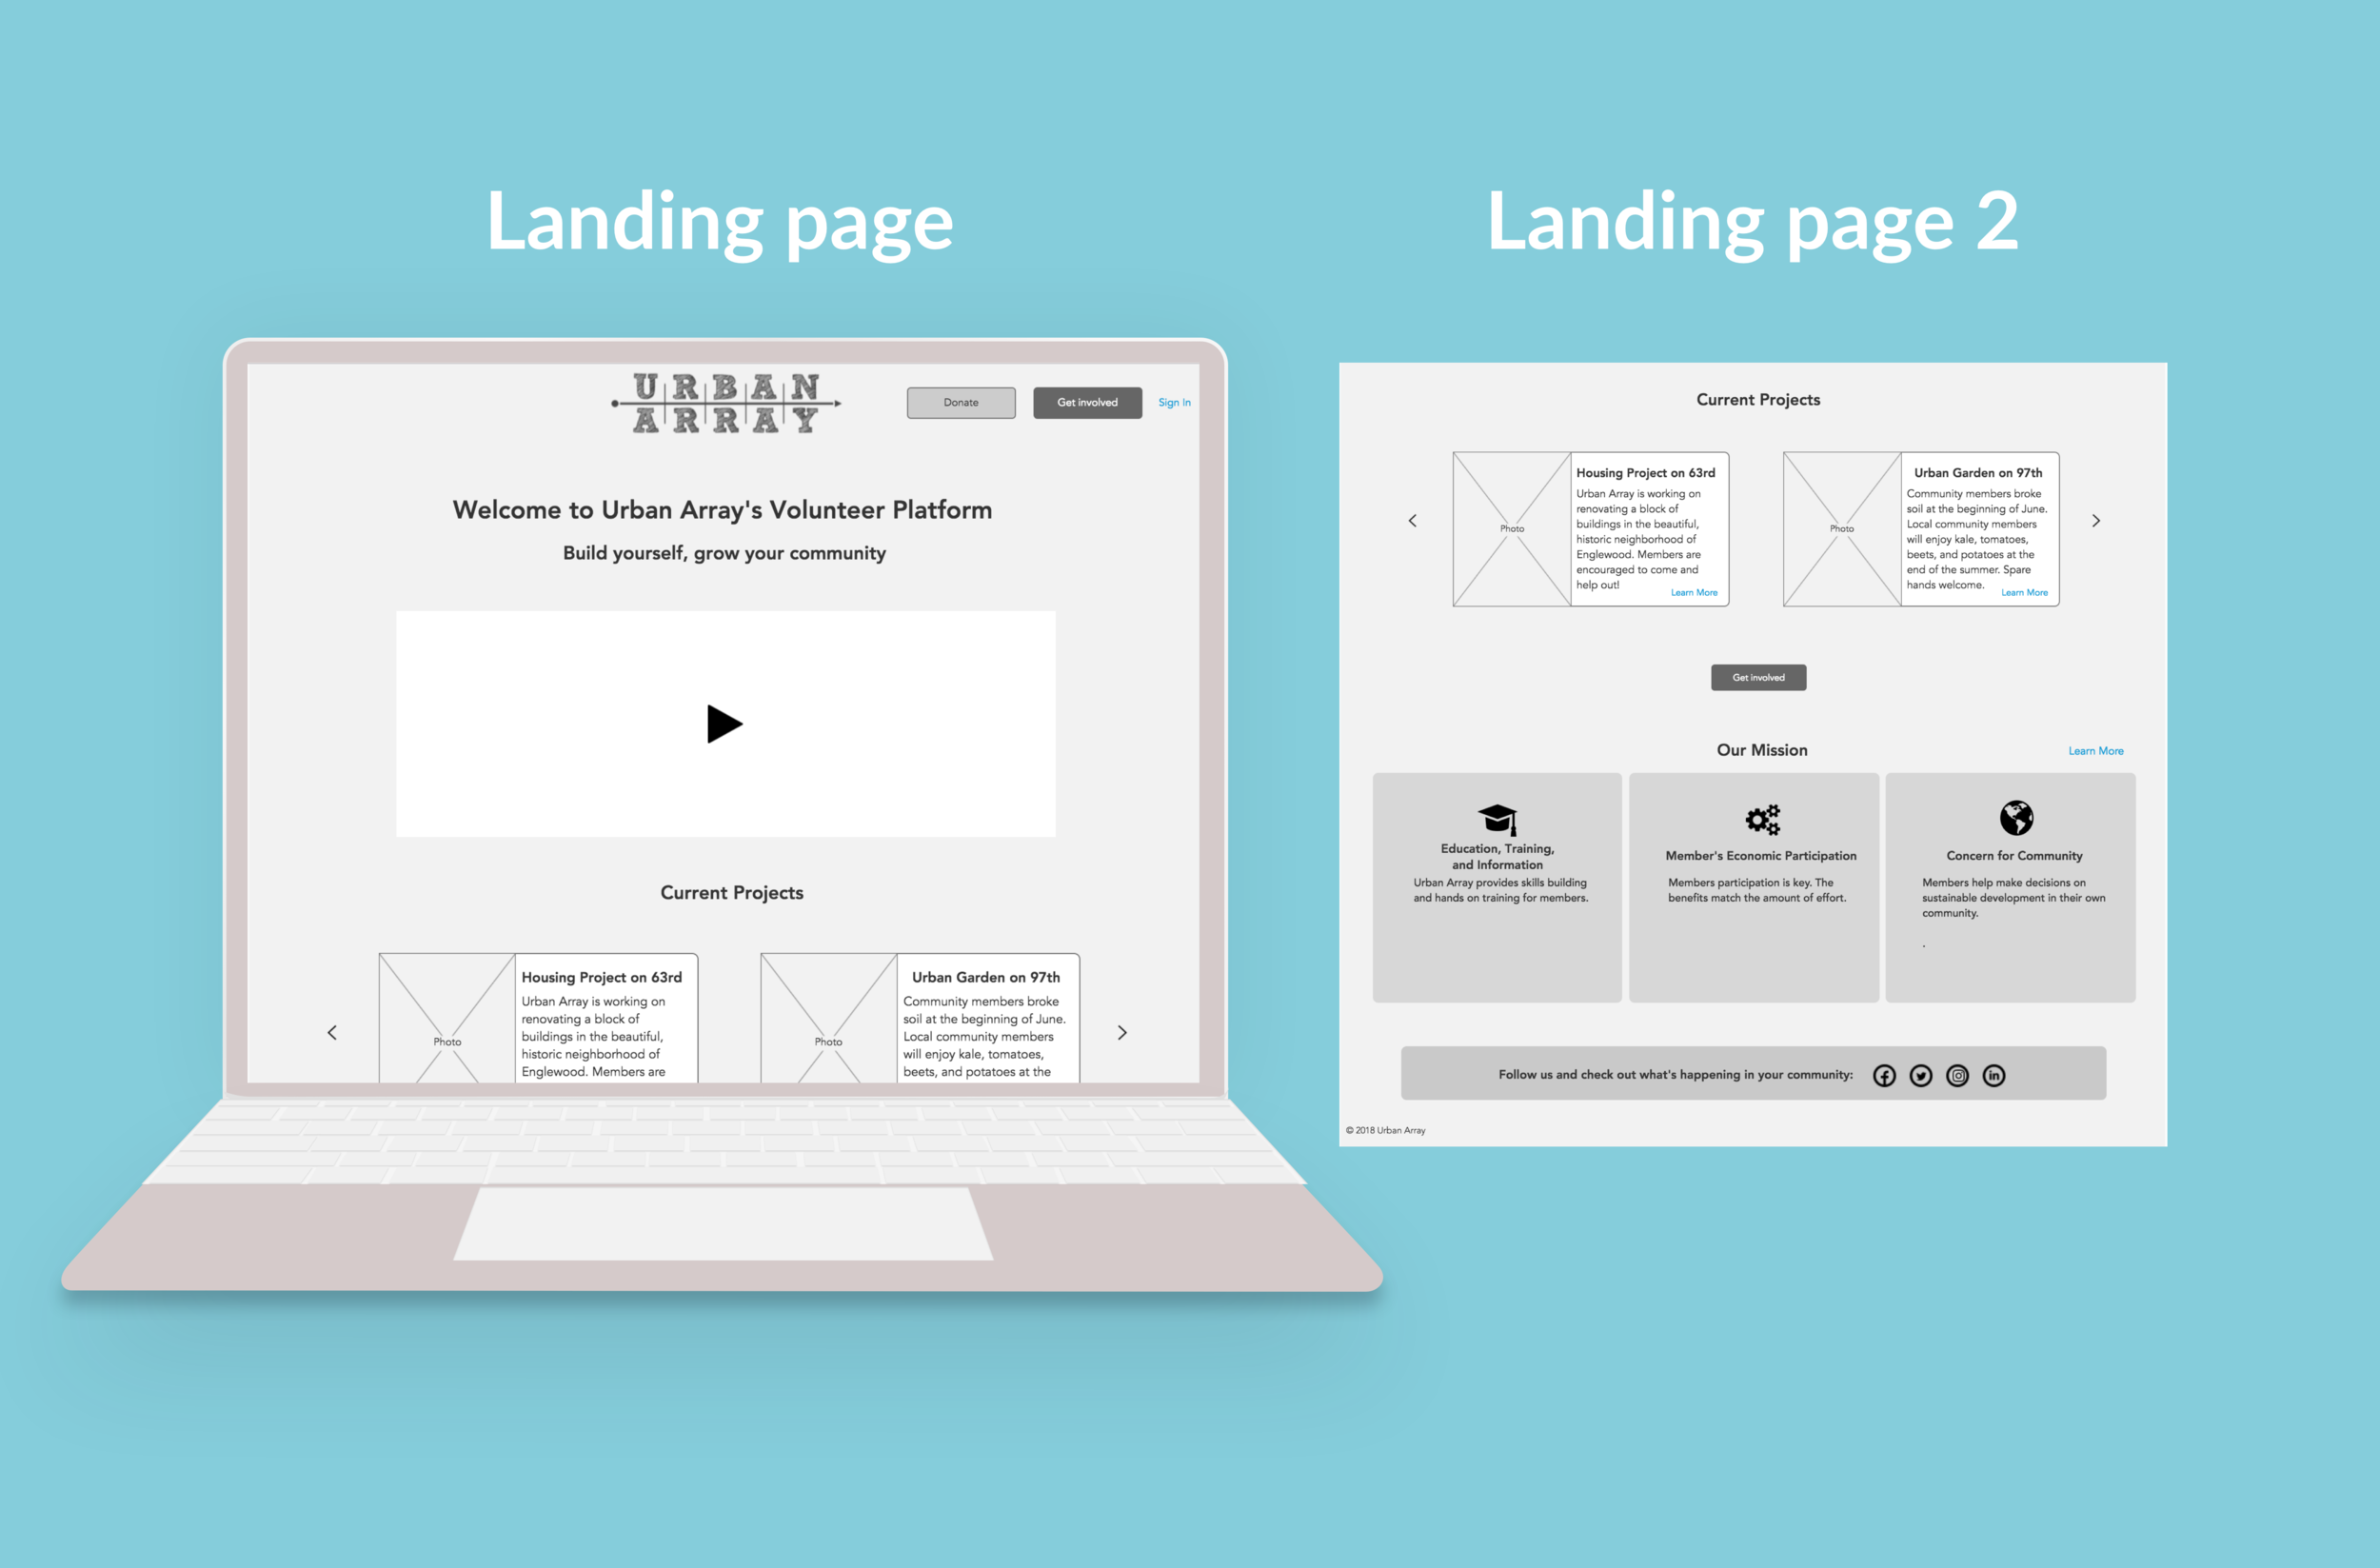 The landing page addresses user feedback to simplify information, present value, and highlight how the social proof Urban Array is performing in the community